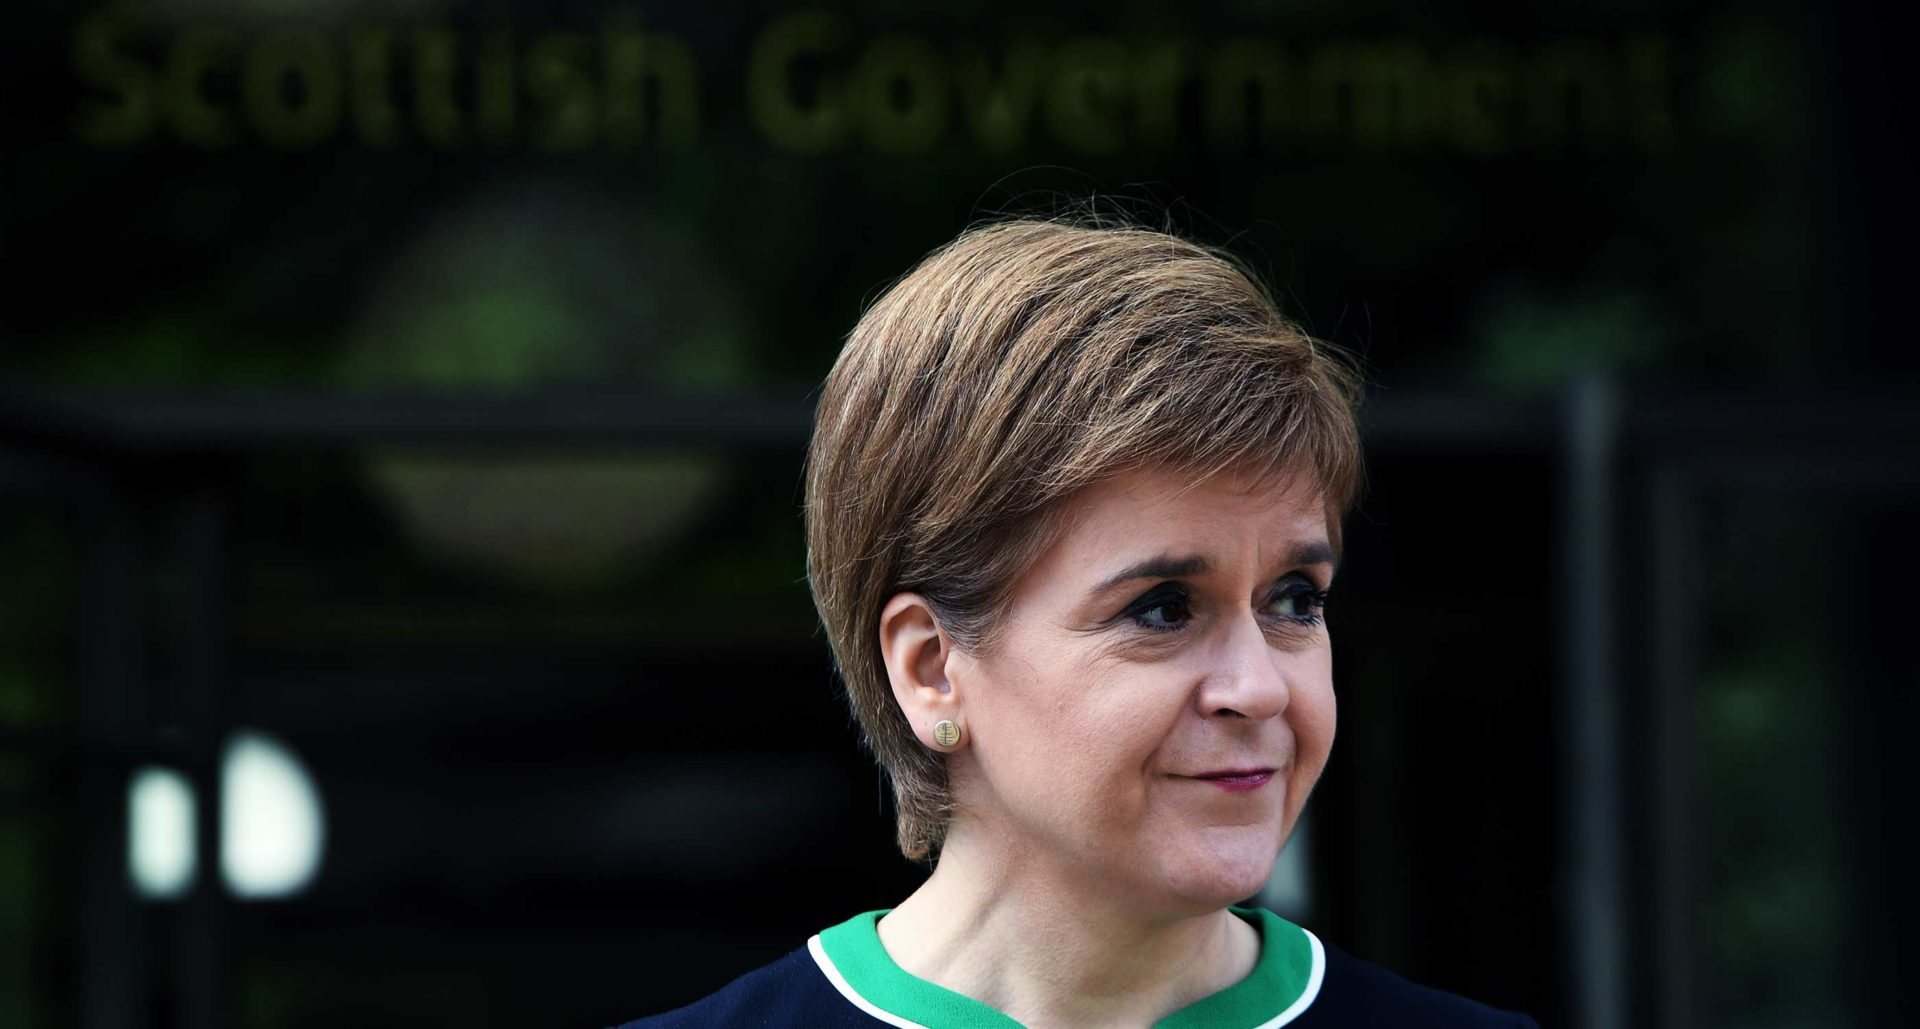 The idea the SNP is having a 'good pandemic' is preposterous - CapX